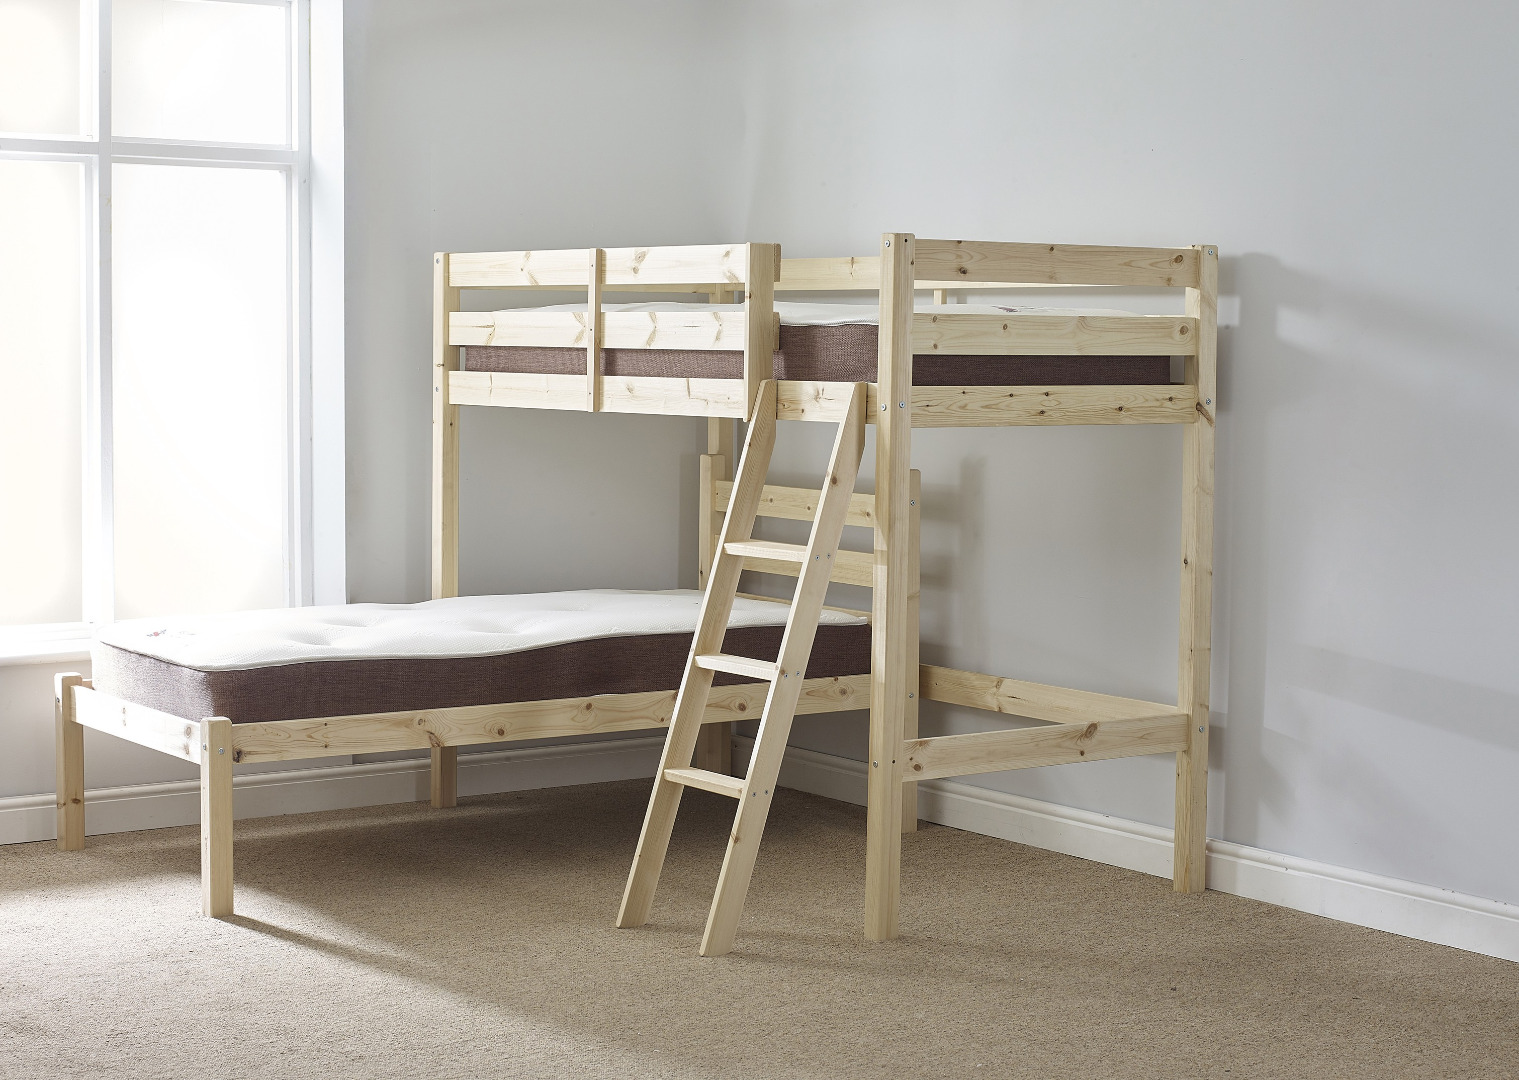 Mandoline 2ft 6 Small Single HEAVY DUTY Solid Pine L SHAPED Bunk Bed